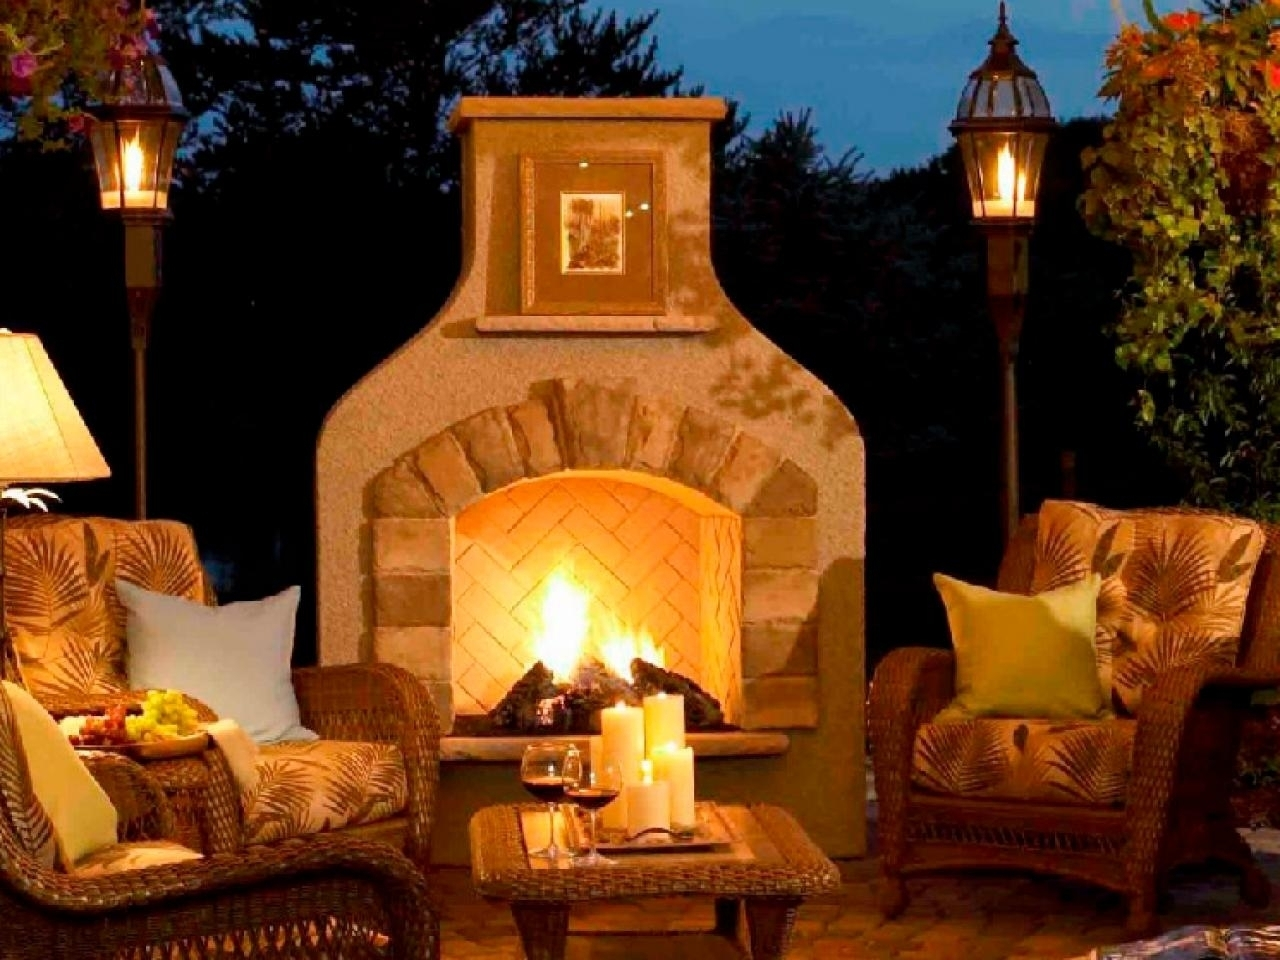 Luxurious Large Clay Chiminea Outdoor Fireplace